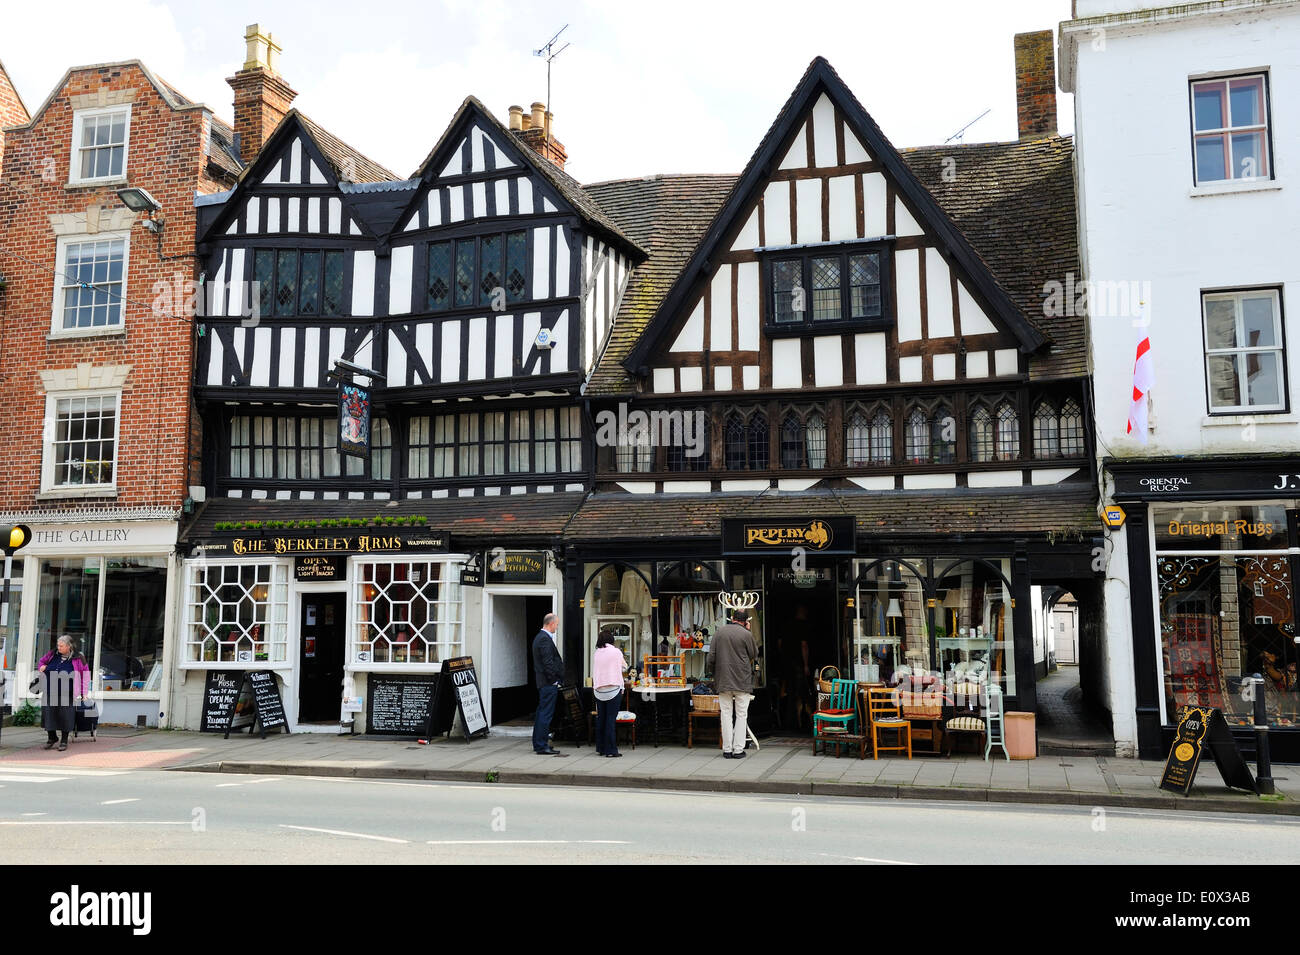 The Berkeley Arms public house on Church Street in Tewkesbury, Gloucestershire, England - Stock Image